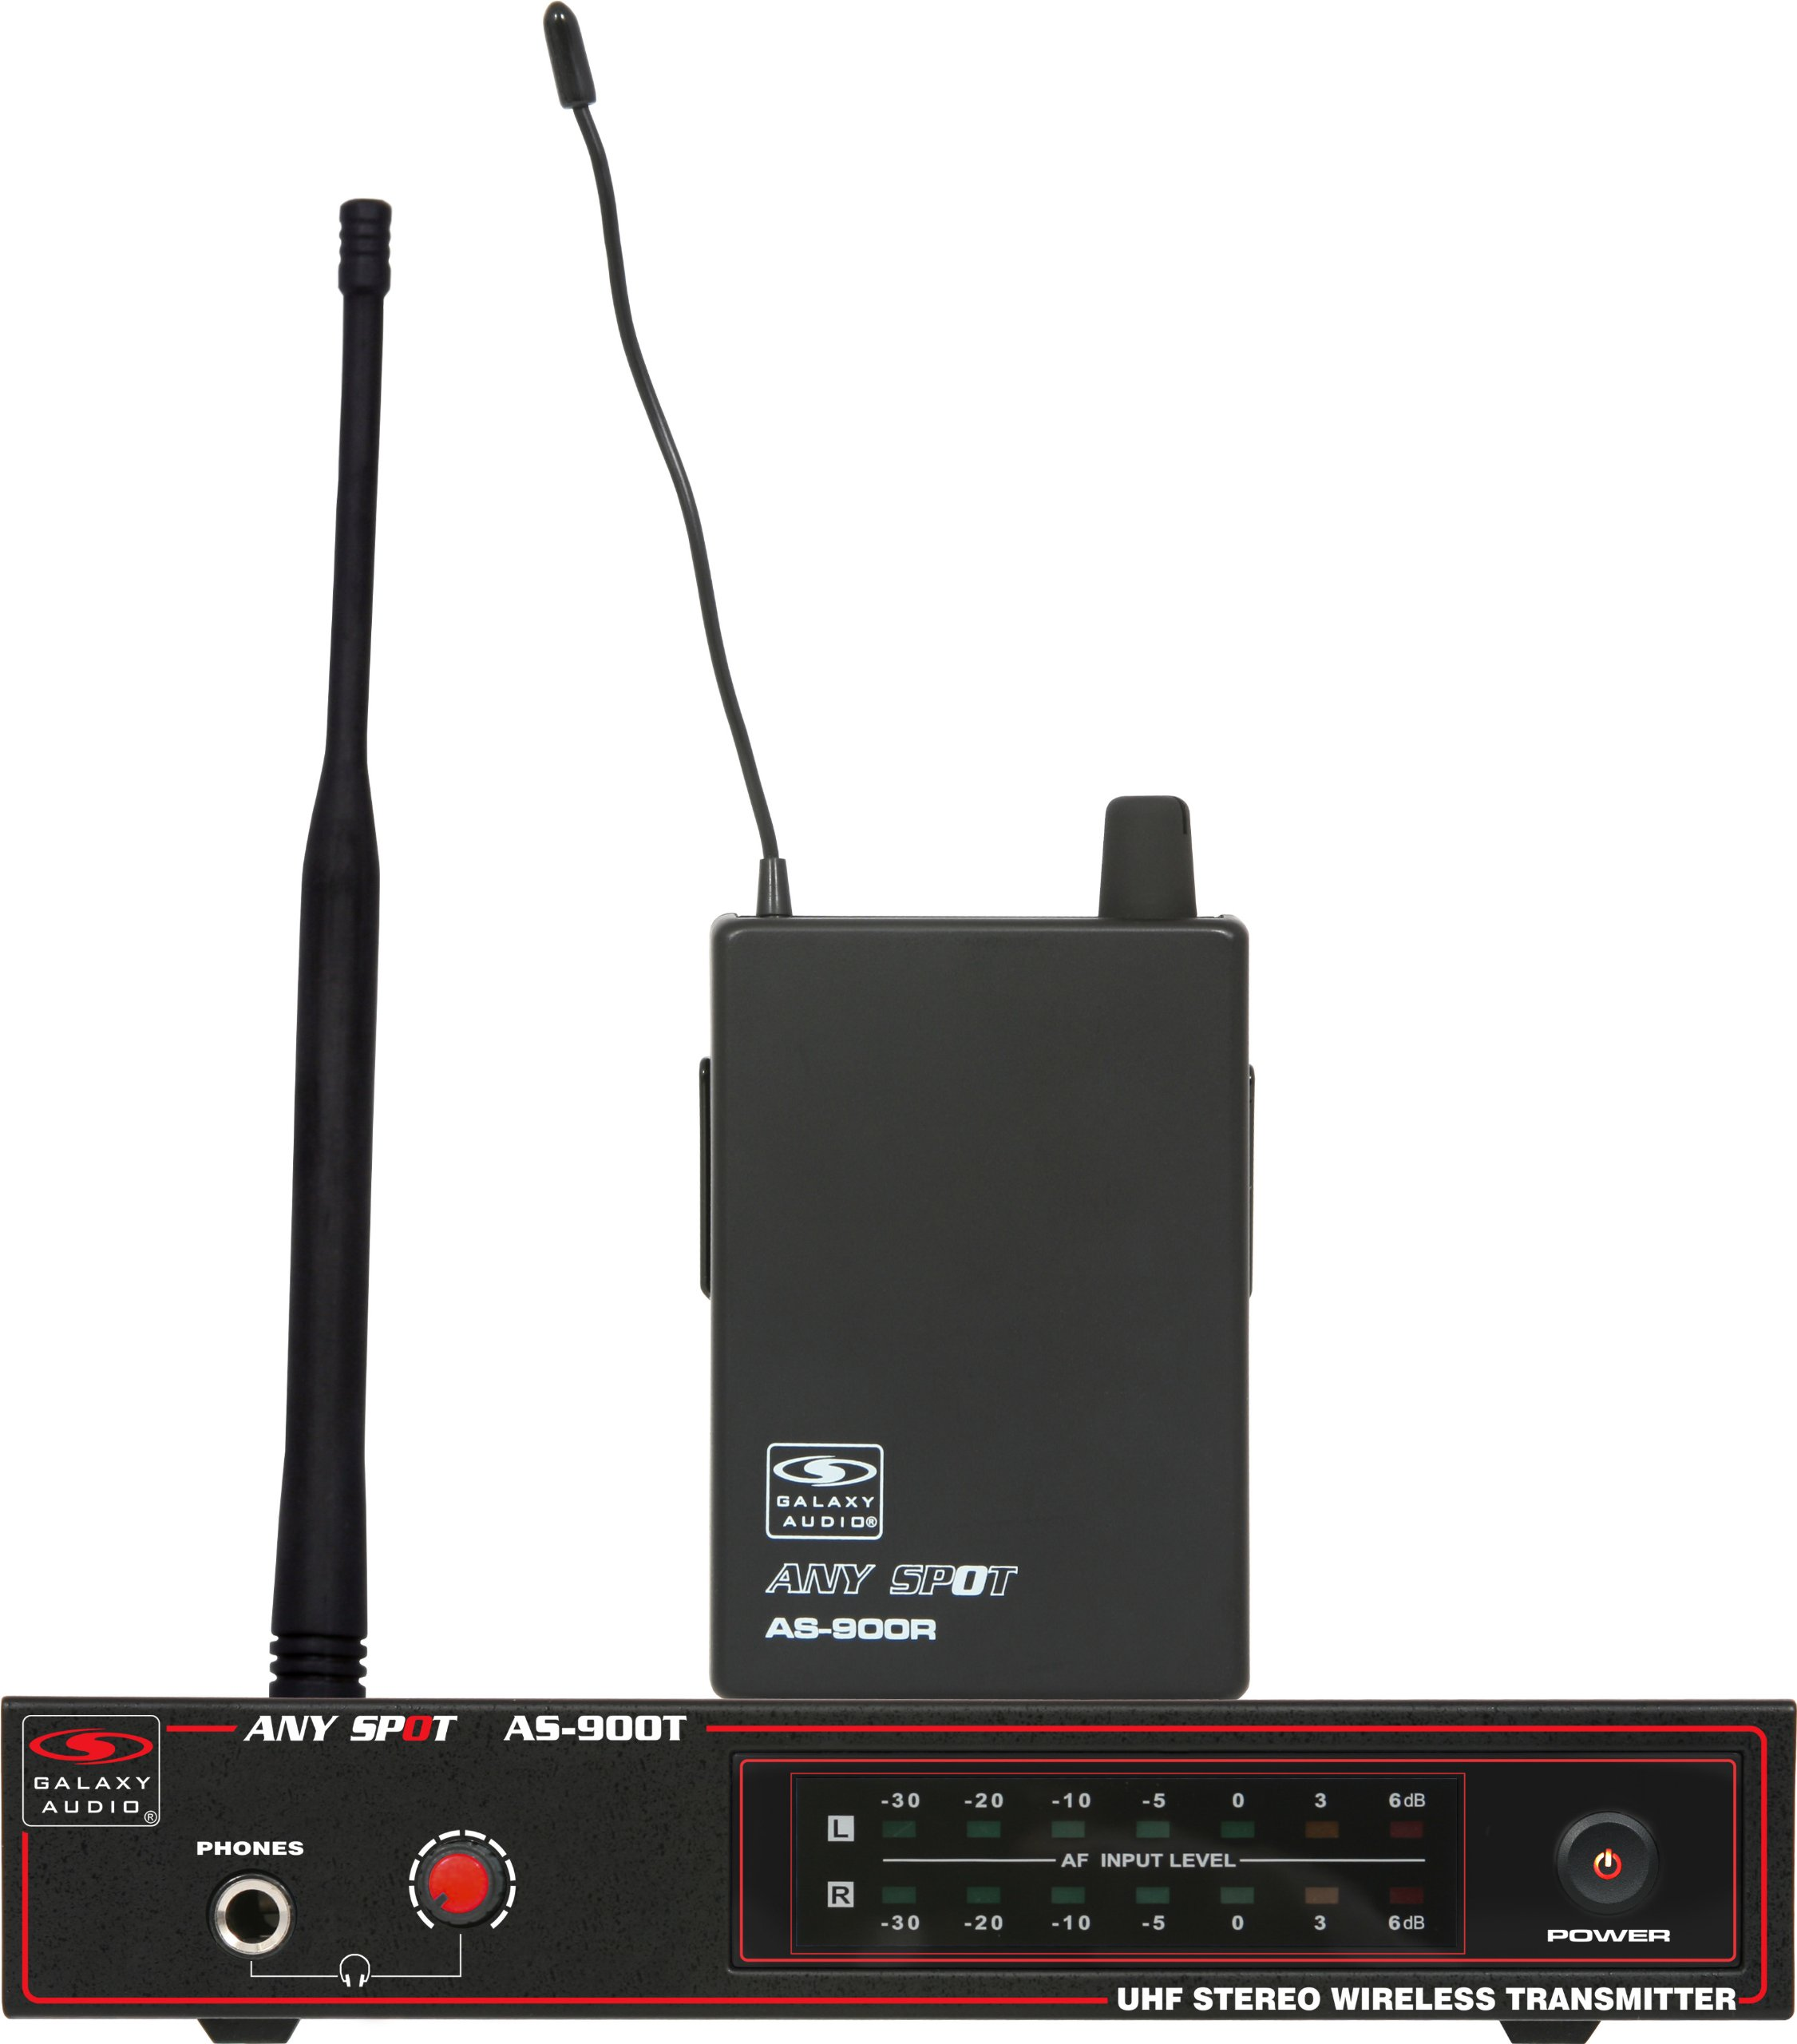 Galaxy Audio AS-900 Wireless In-Ear Personal Monitor System, Code N1 (514.4 MHz)